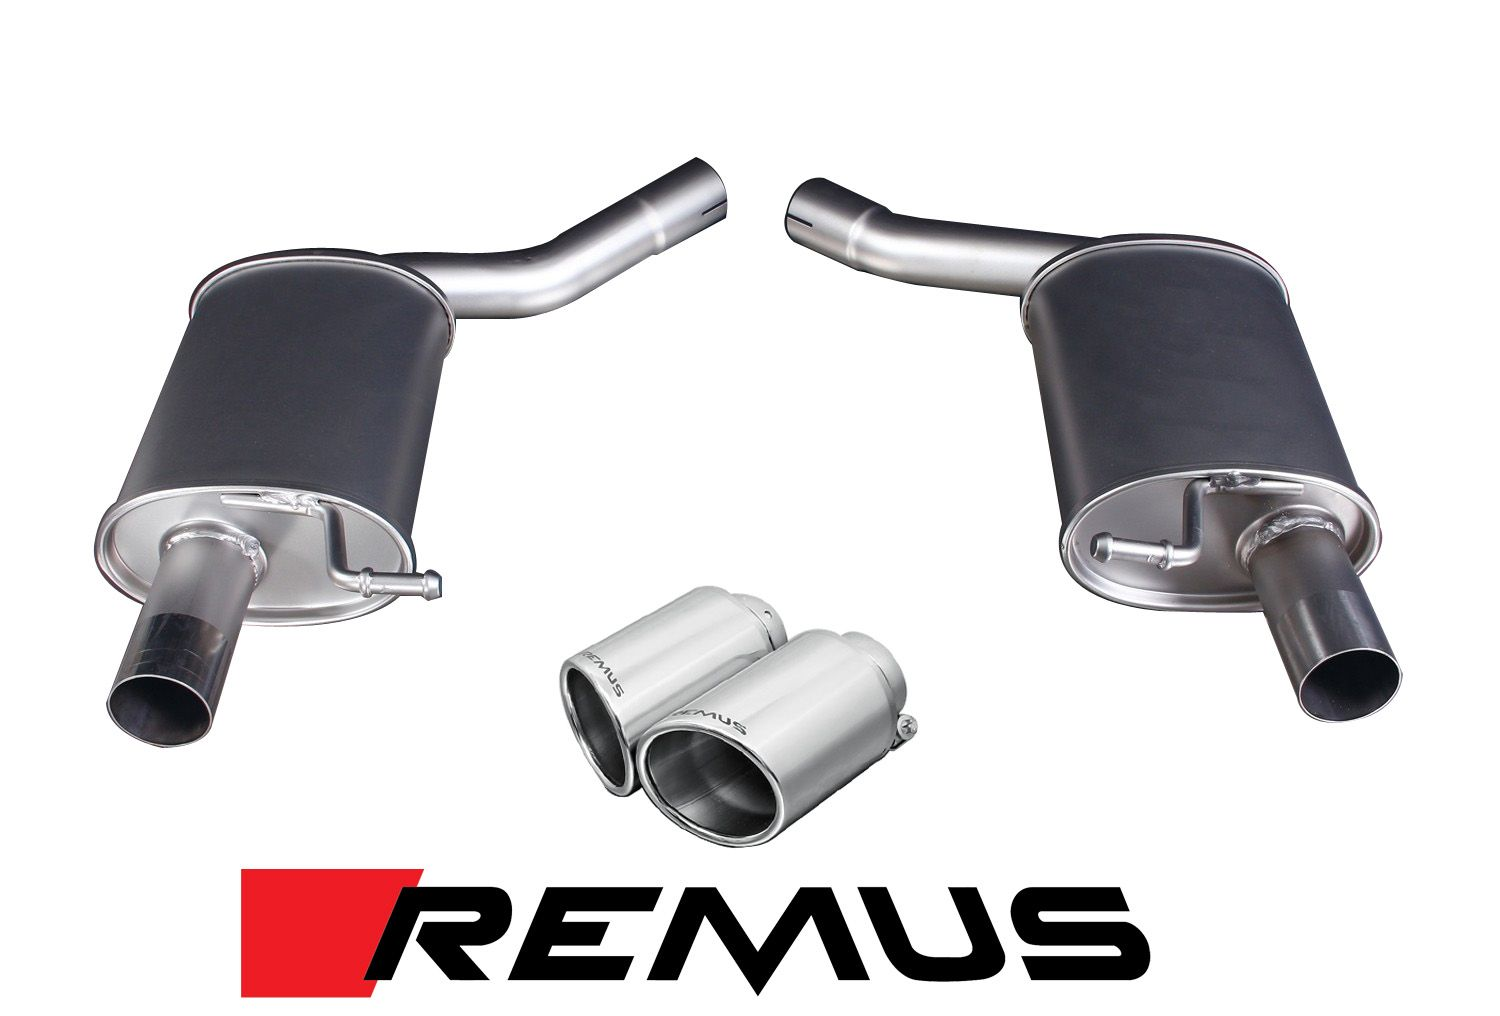 Remus Cat-Back Exhaust for 2012-16 Audi A7 [C7] 048011 0500LR + 0026 70SS